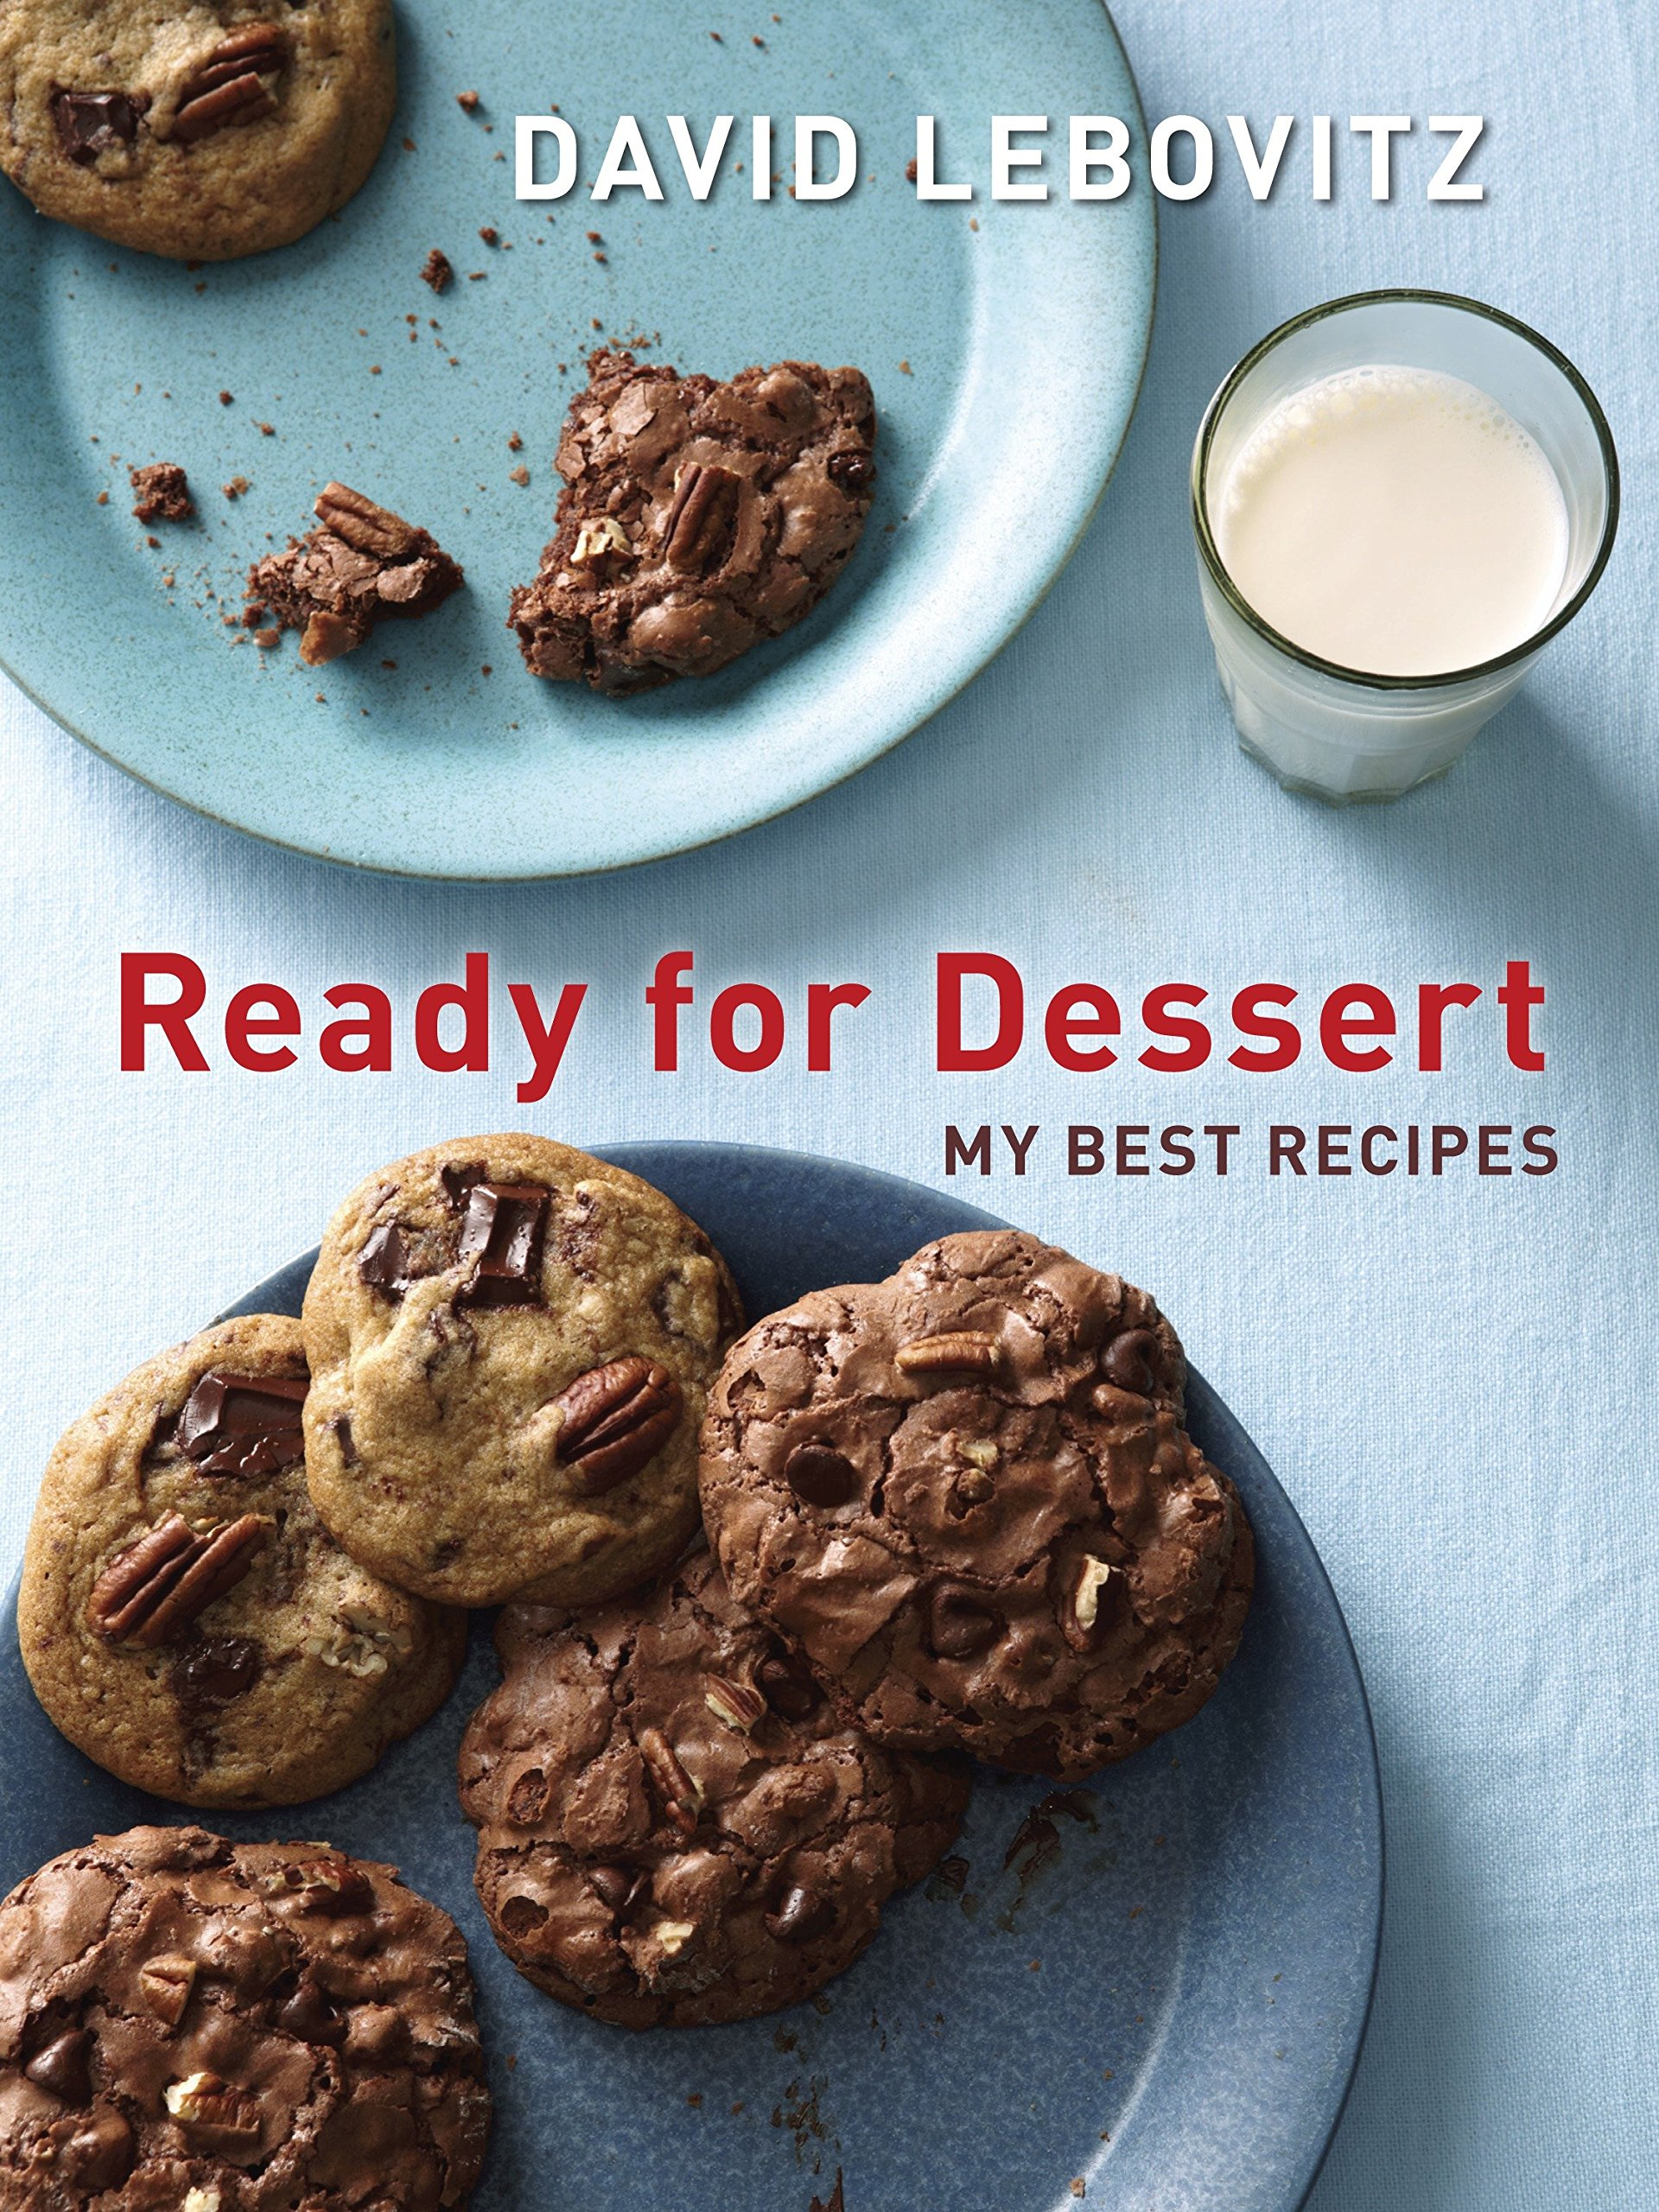 Ready for Dessert: My Best Recipes: David Lebovitz: 9781607743651 ...